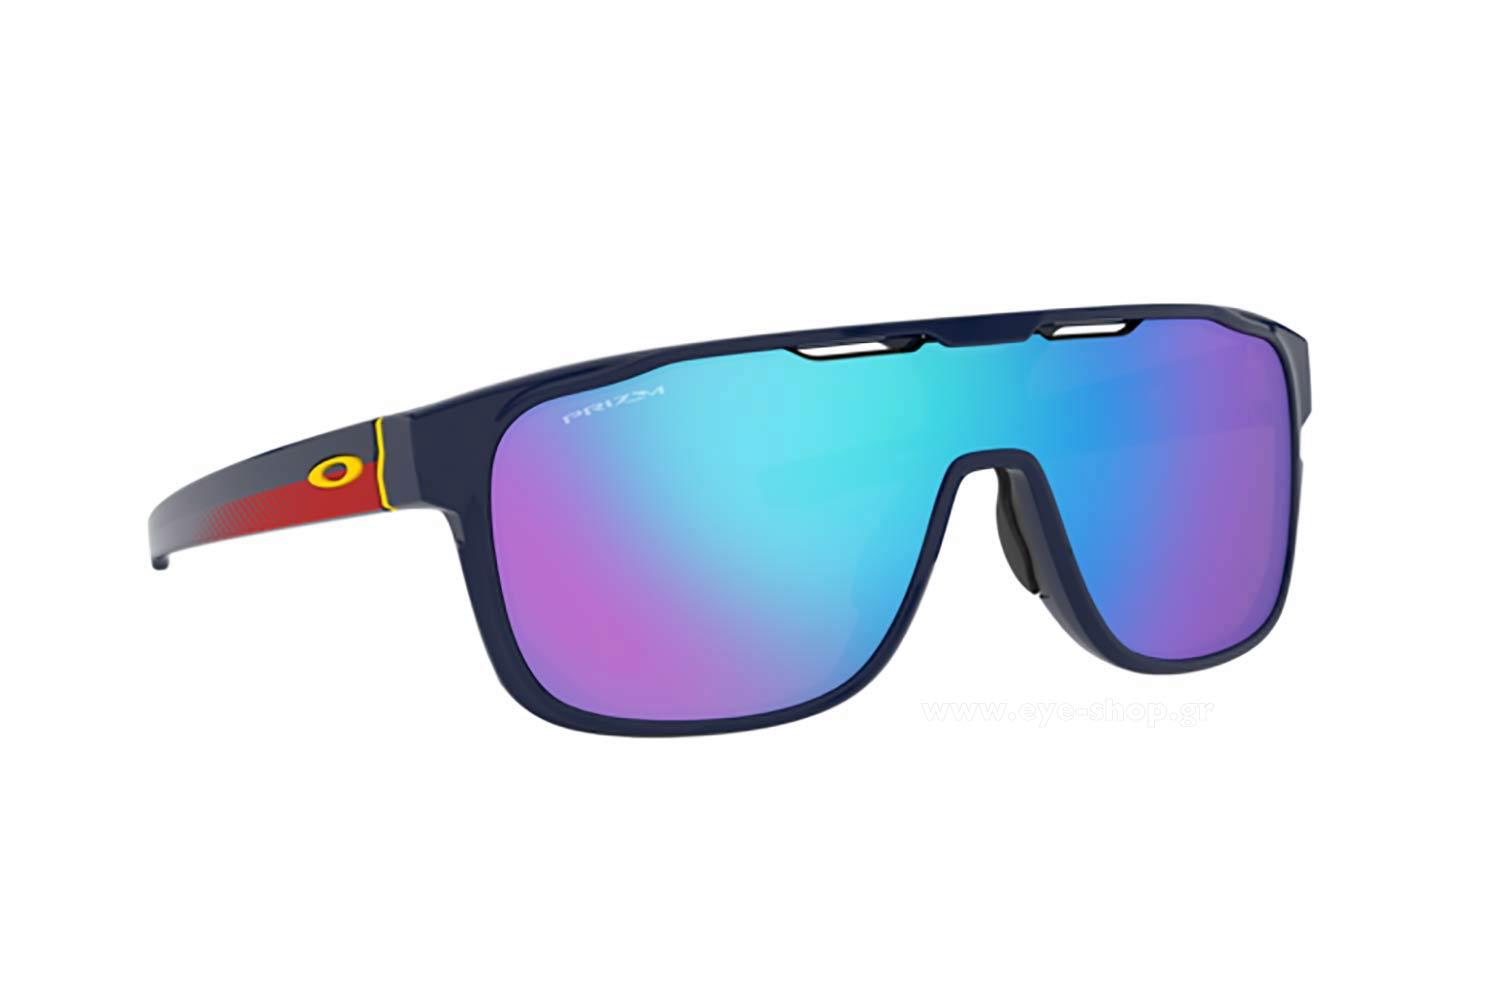 Γυαλιά Oakley CROSSRANGE SHIELD 9387 10 NAVY